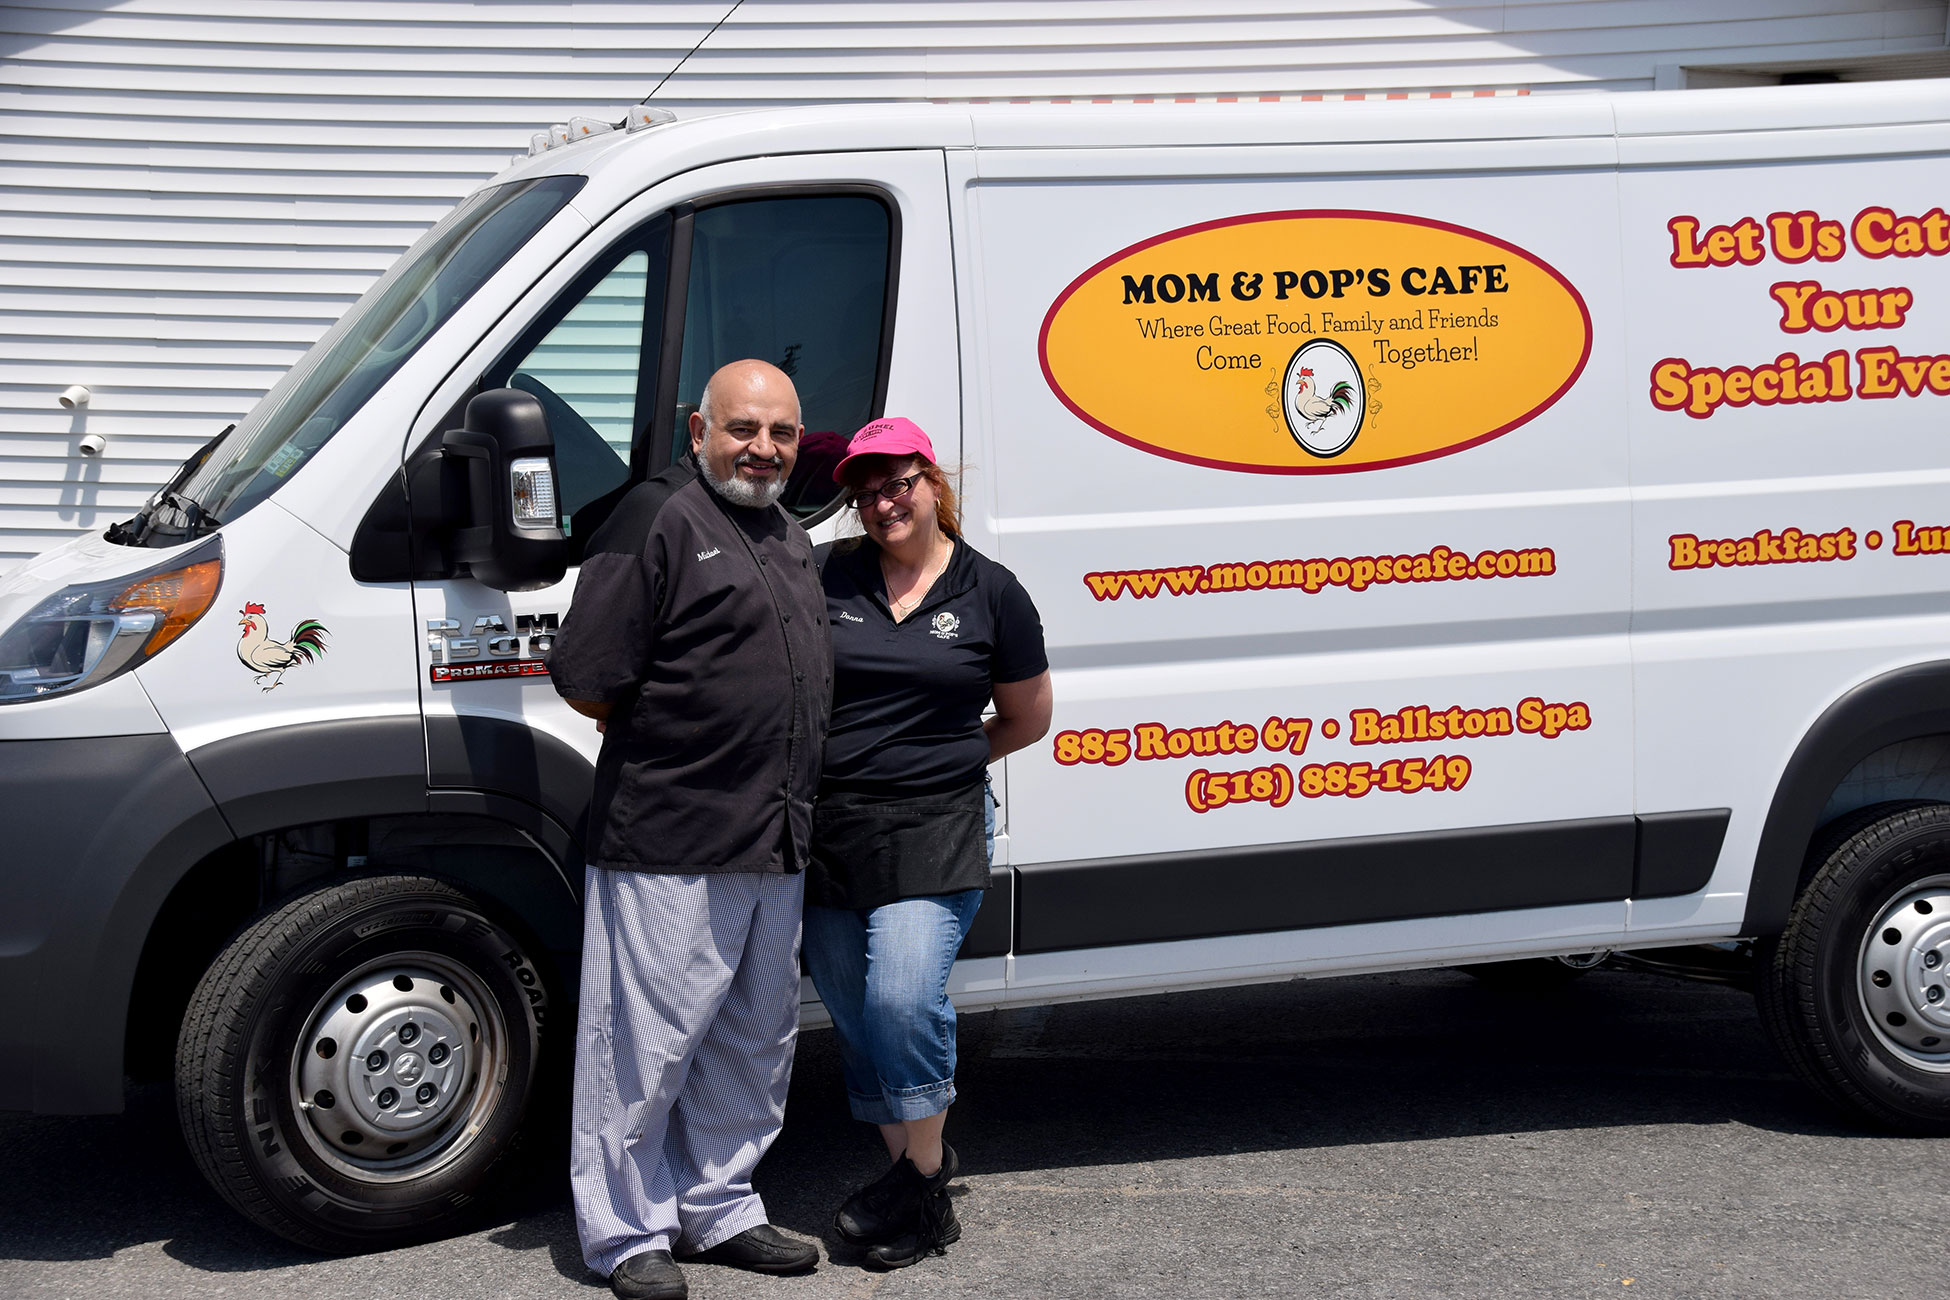 Photo of Mike and Donna Venturiello in front of their Mom and Pop's Cafe catering van with graphics designed and applied by SillyCar Design.